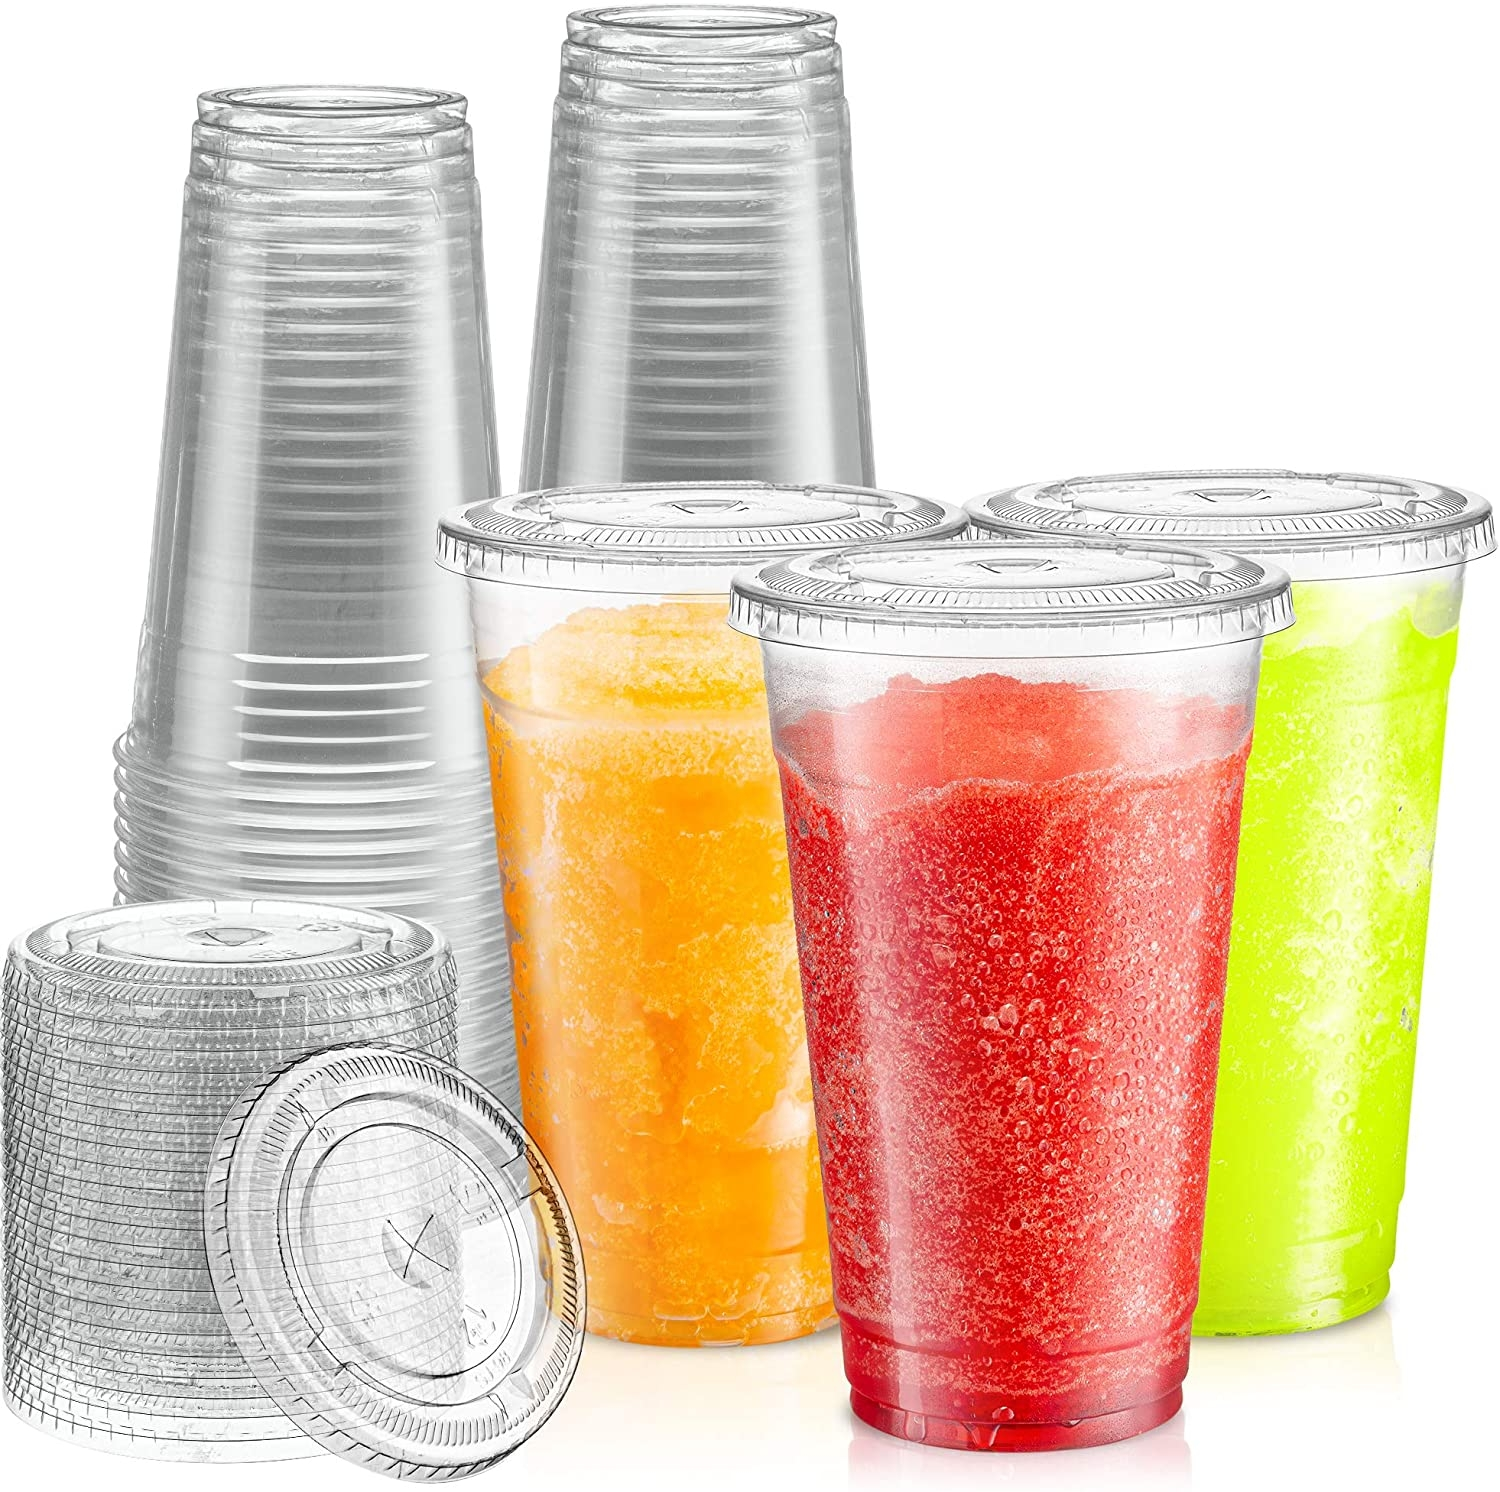 Smoothie Cups & Lids